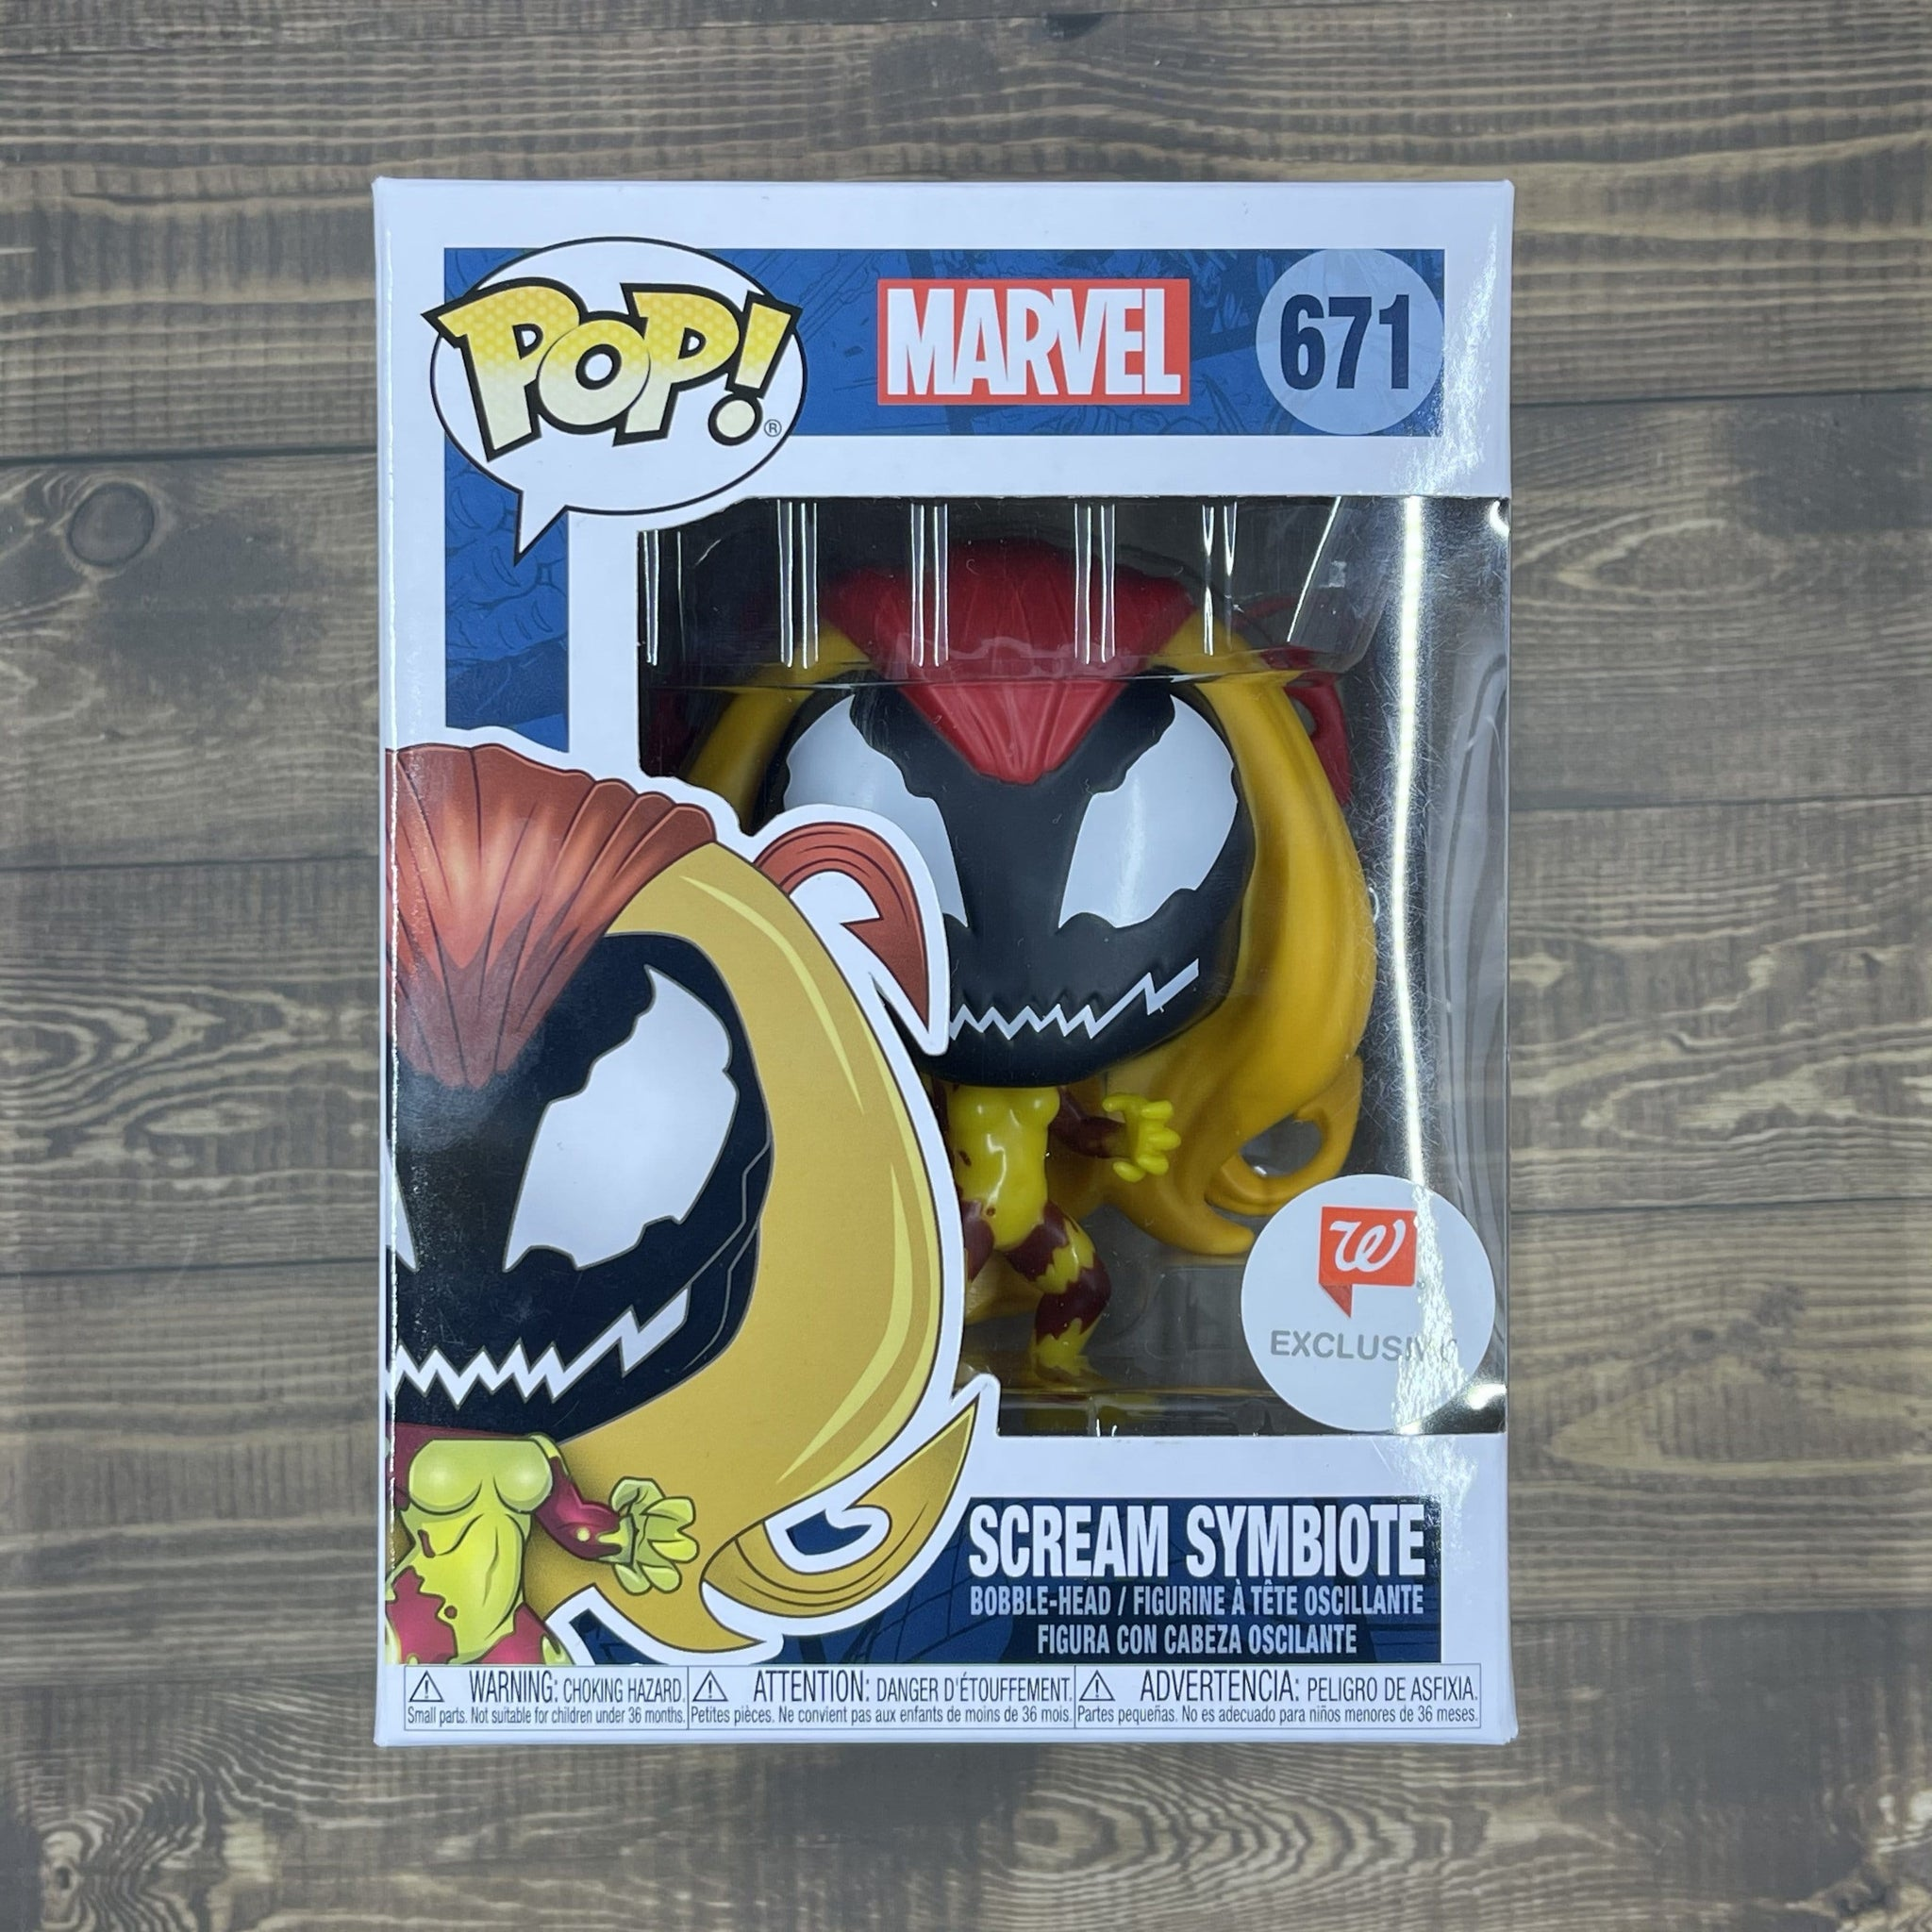 Funko Pop 671 Scream Symbiote - Marvel Character Collectible